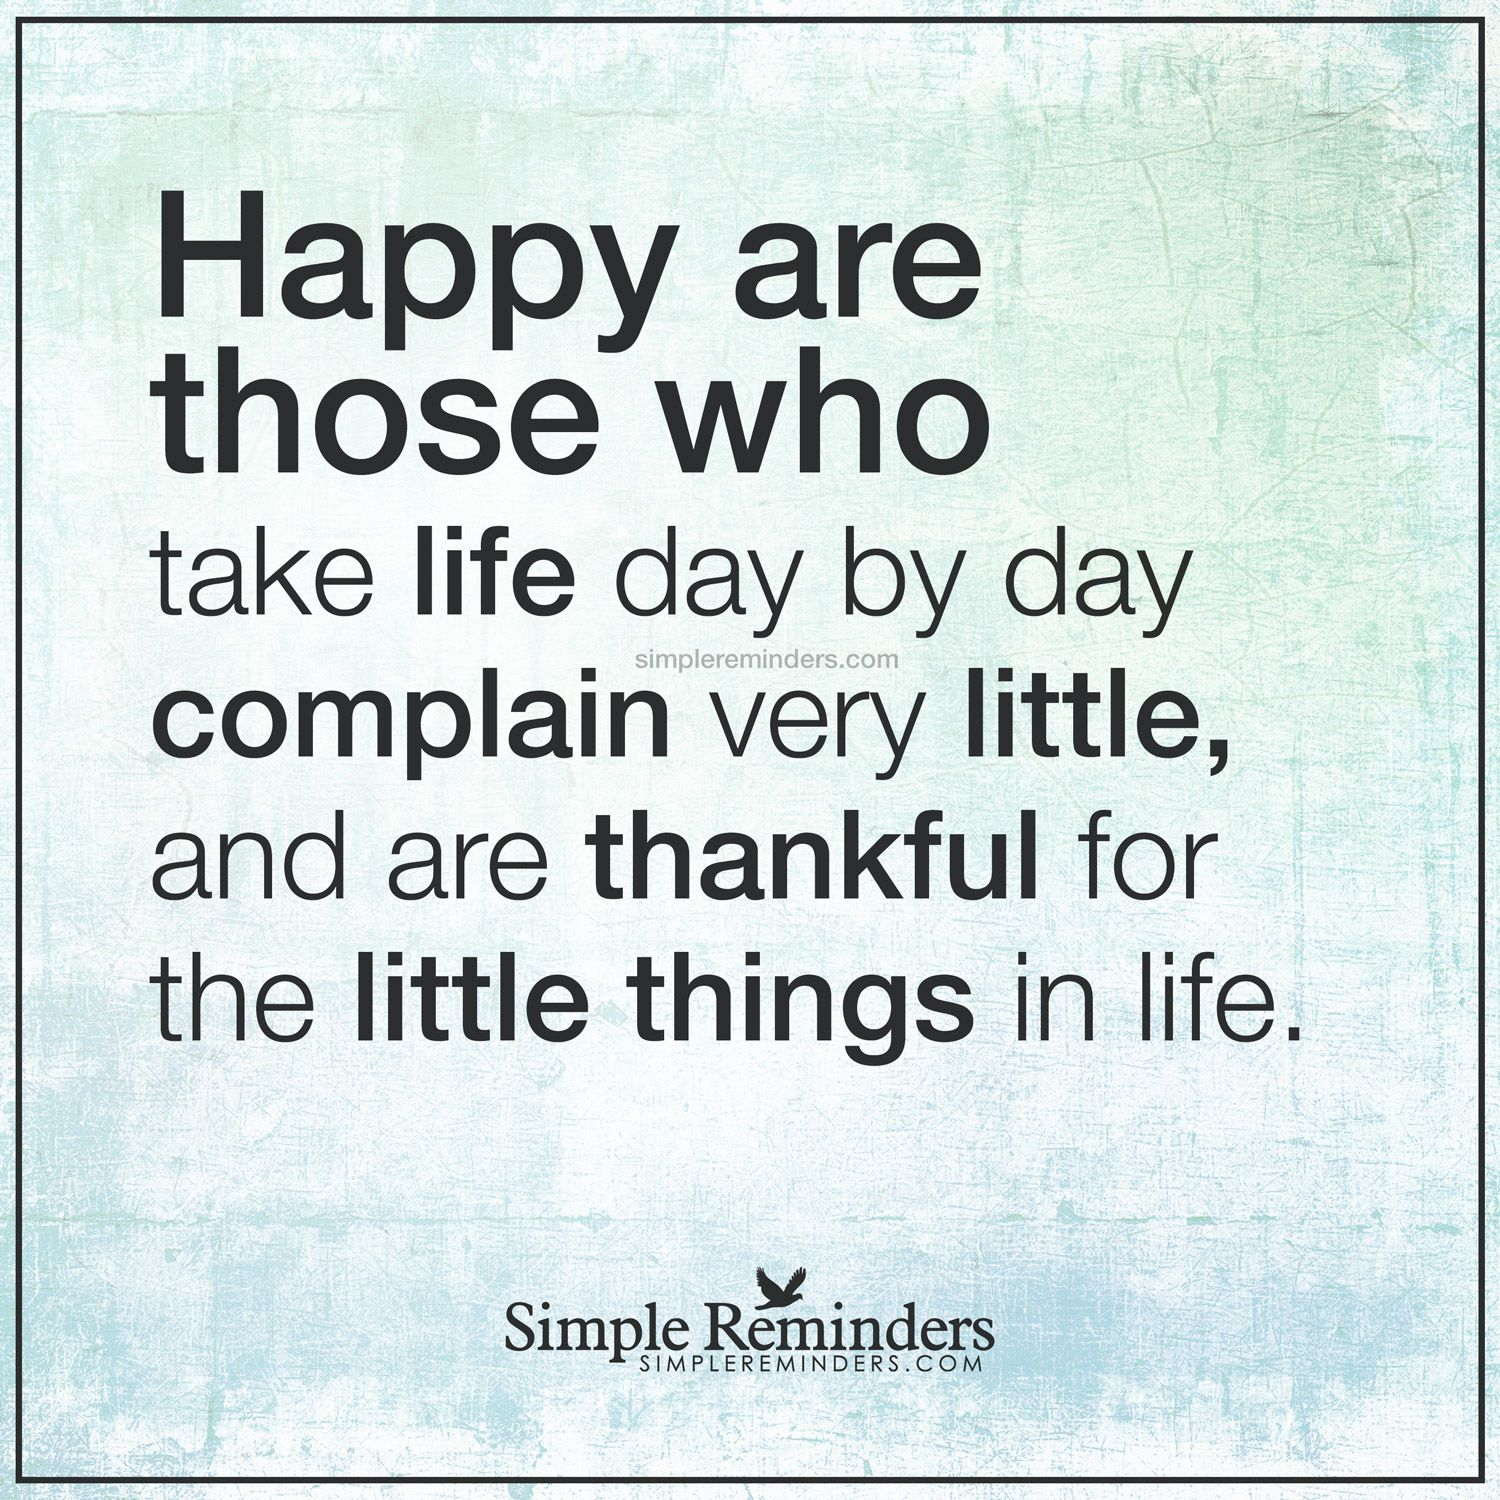 Quotes Of The Day About Life Be Thankful For The Little Things Happy Are Those Who Take Life